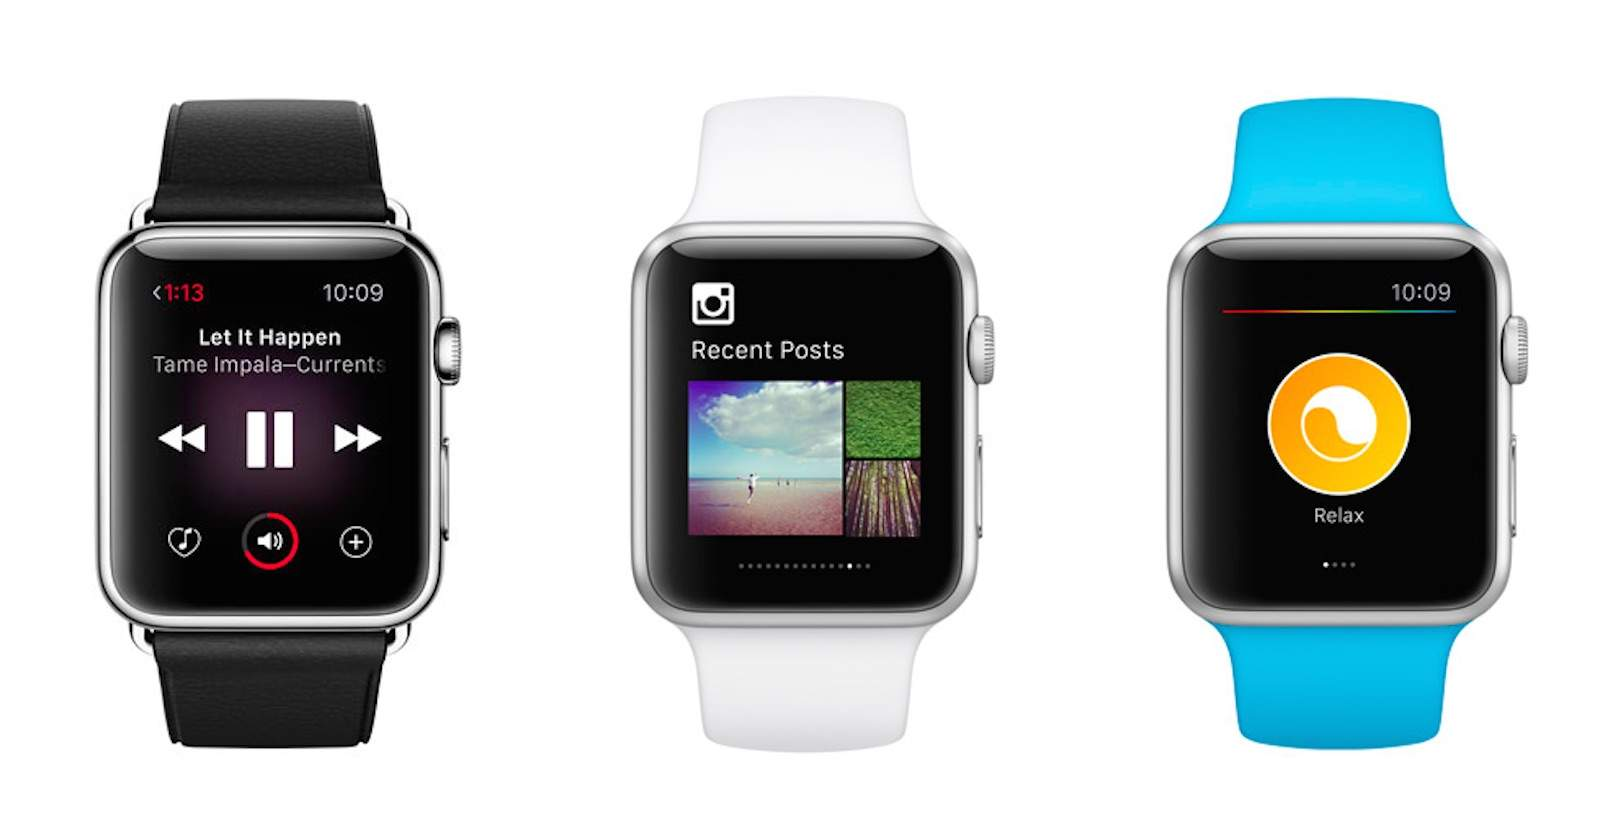 WatchOS 2.0.1 is out.